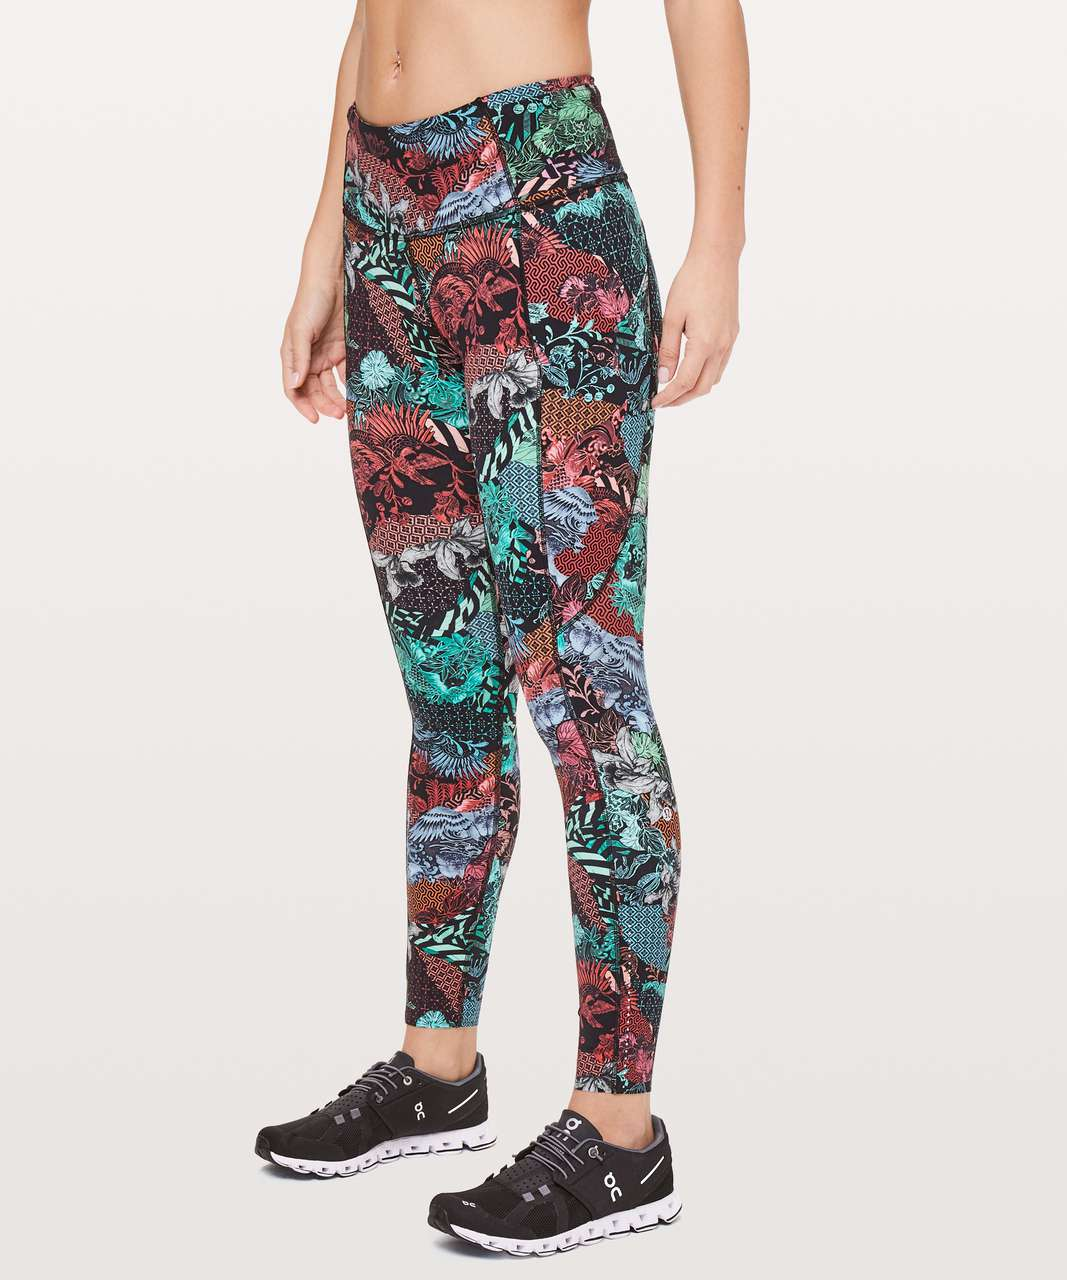 "Lululemon Fast & Free 7/8 Tight II *Nulux 25"" - Zen Clash Multi"